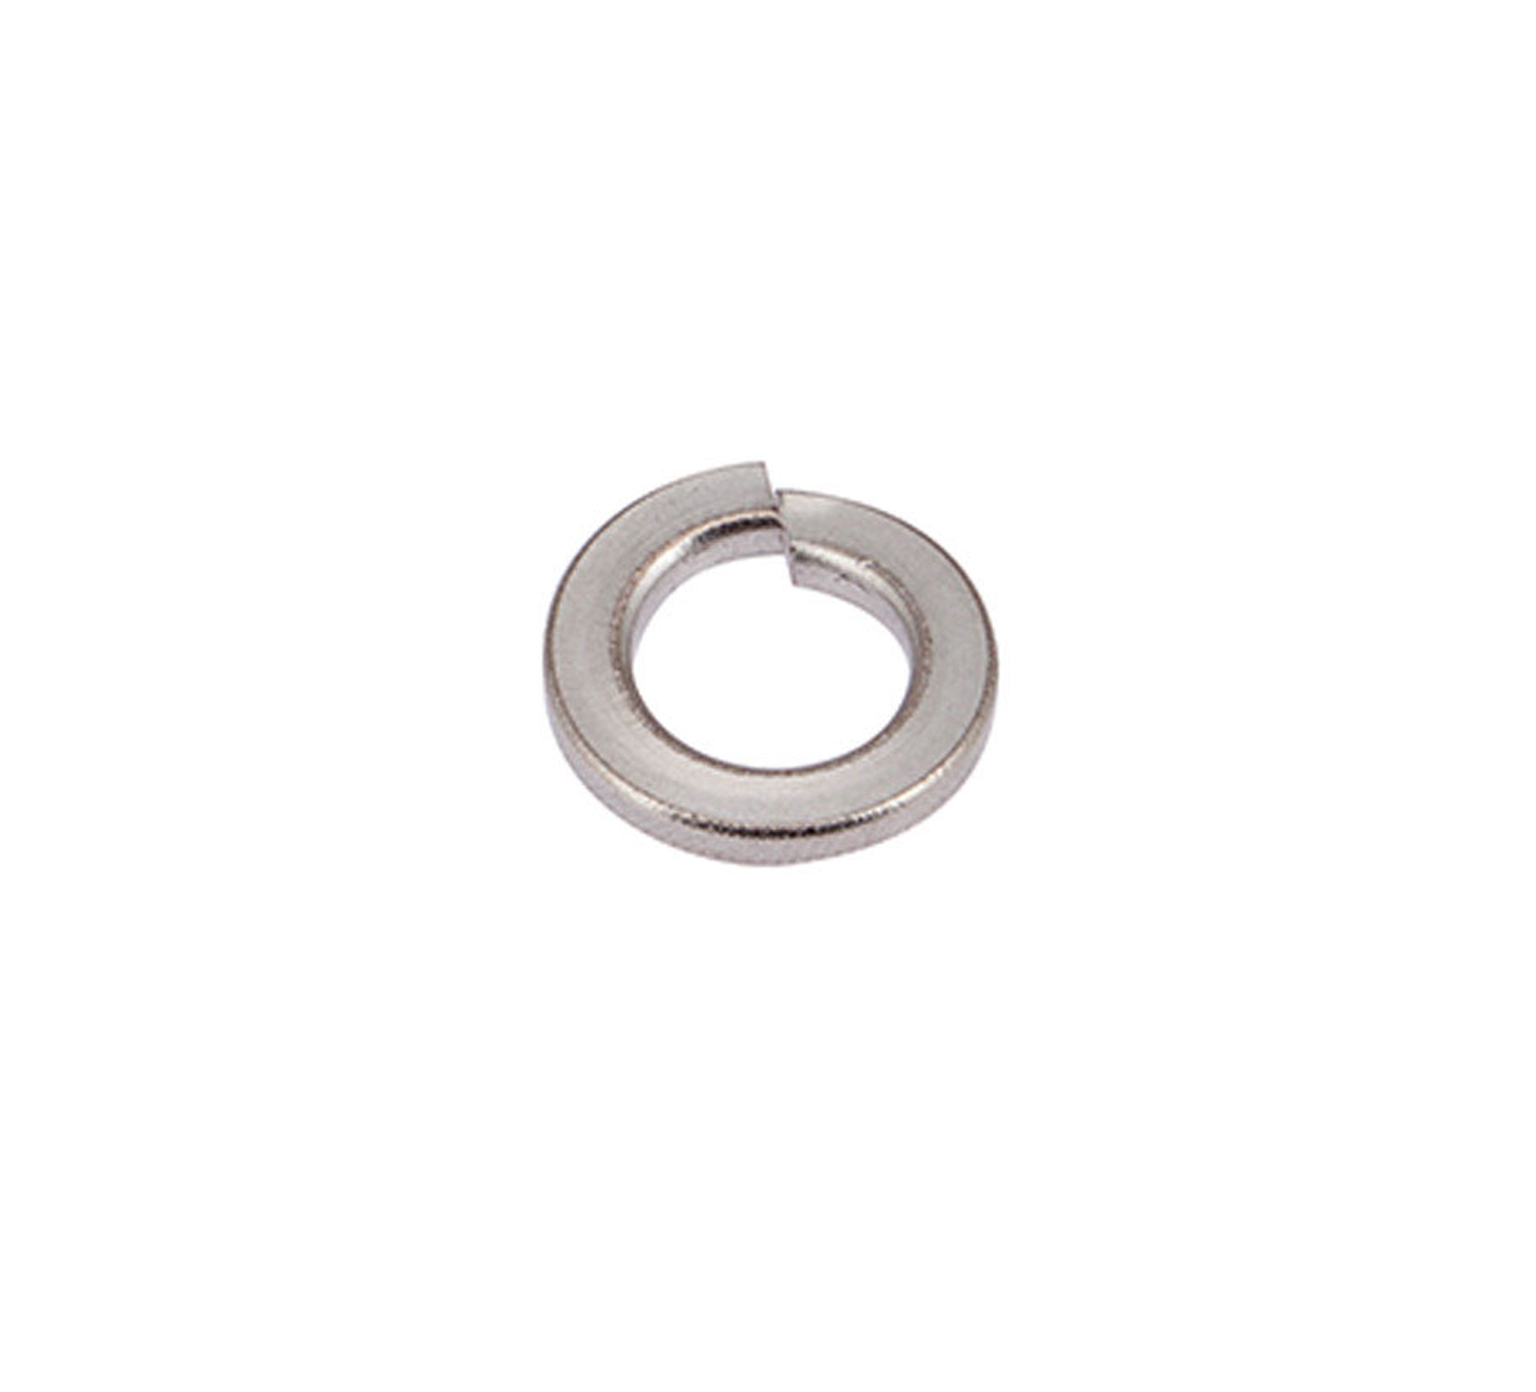 140024 Stainless Steel Lock Washer - 0.87 OD x 0.51 ID x 0.12 in alt 1